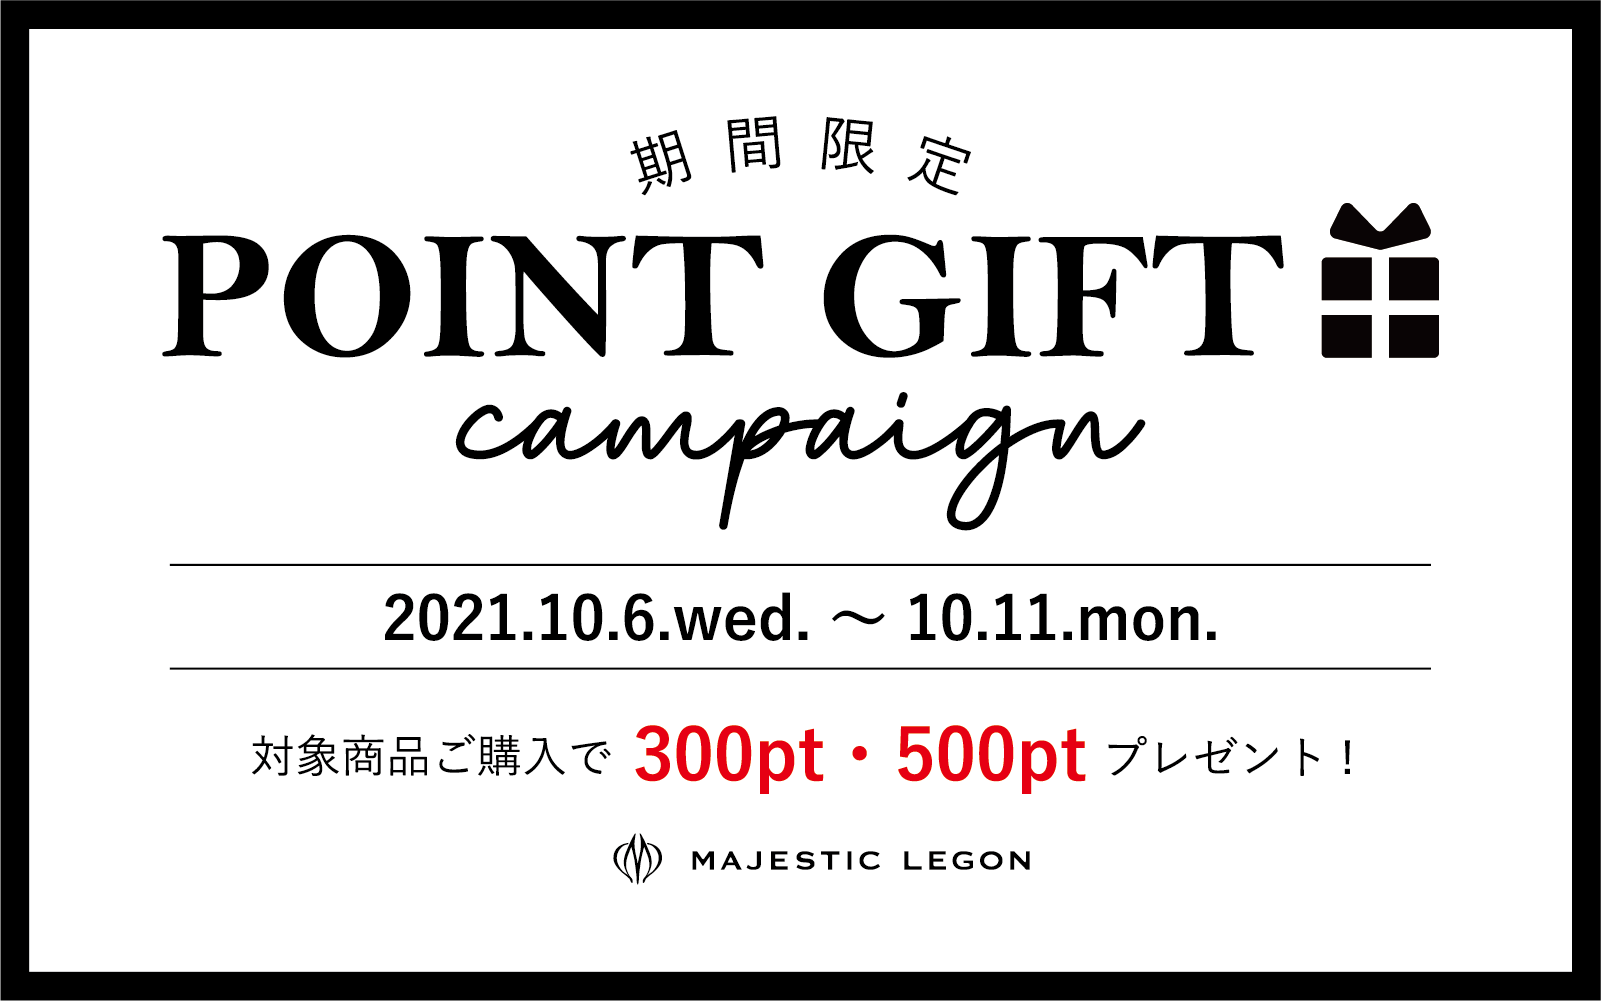 POINT GIFT CAMPAIGN♥ 10.6.wed.START!